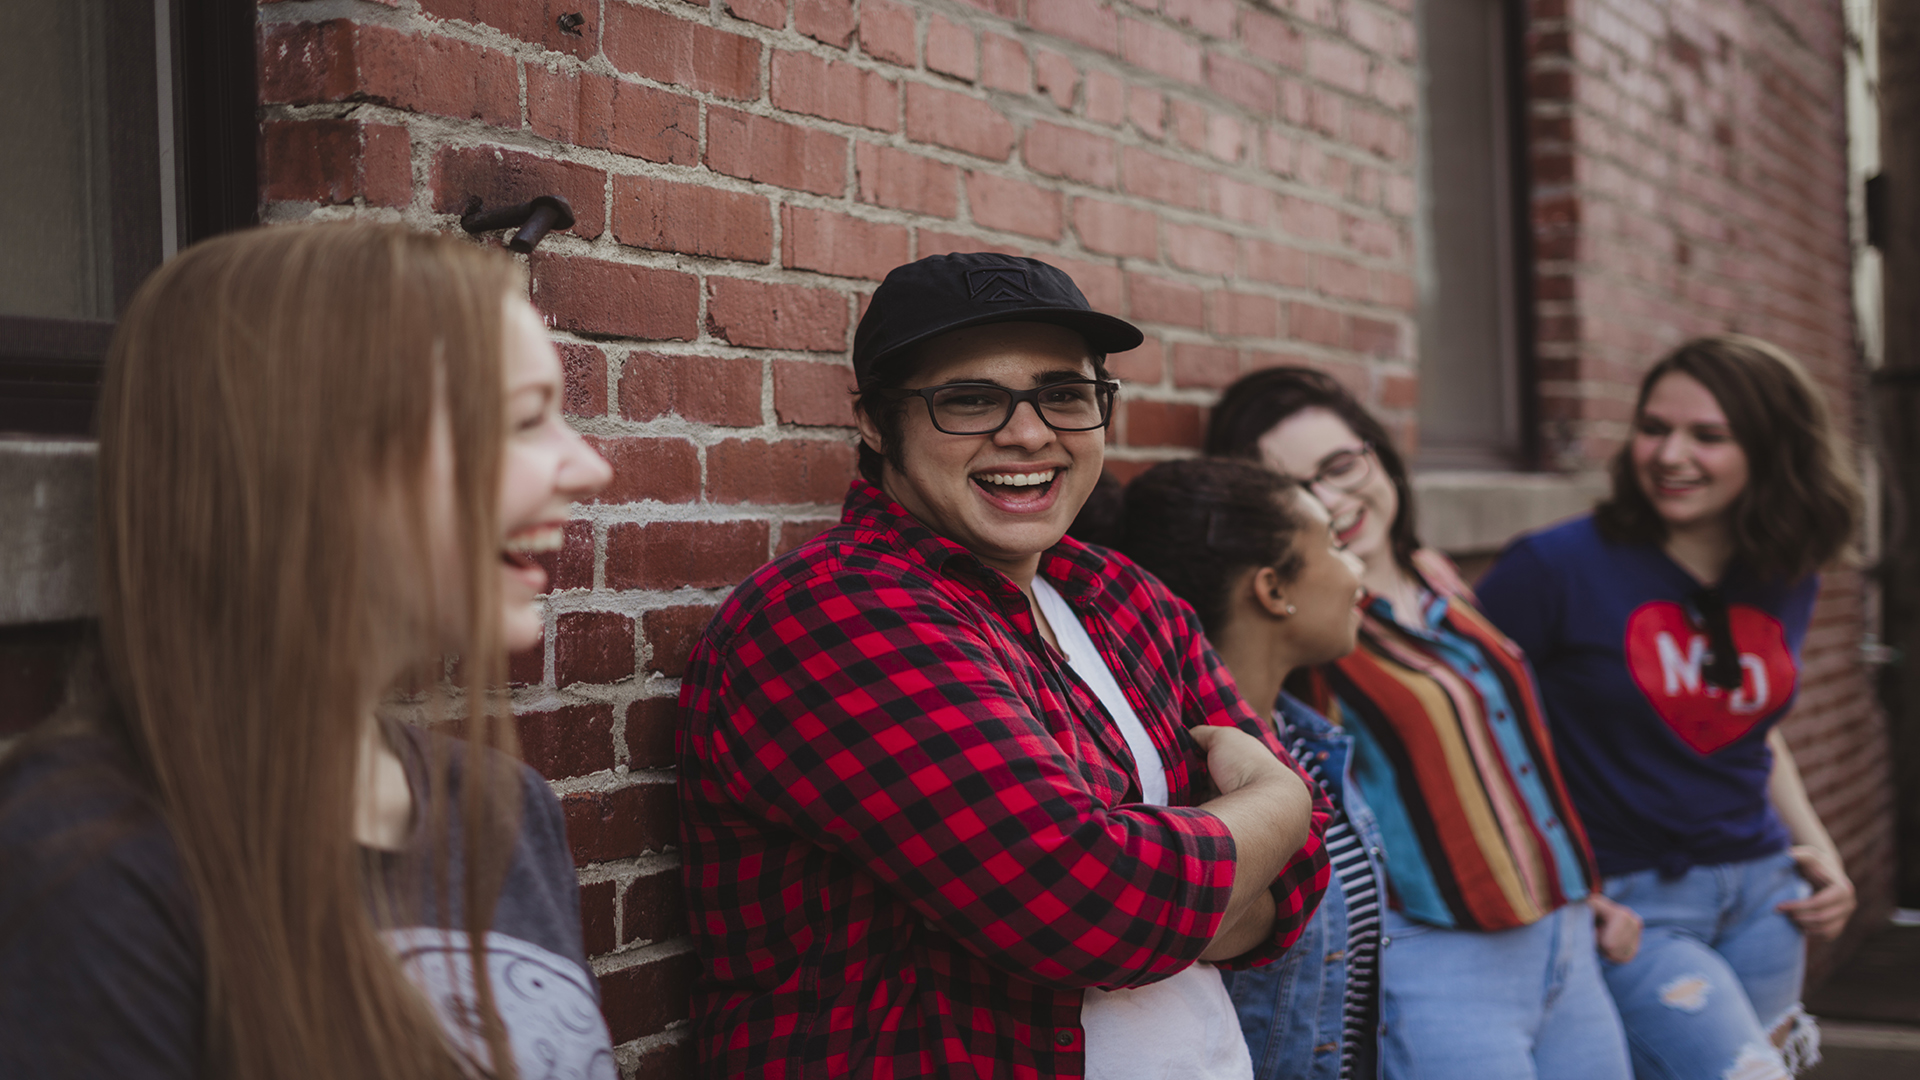 Life Groups - Find a group of friends who you can laugh, learn, and be yourself with. A Life Group is a chance for students to make connections with God and other students.